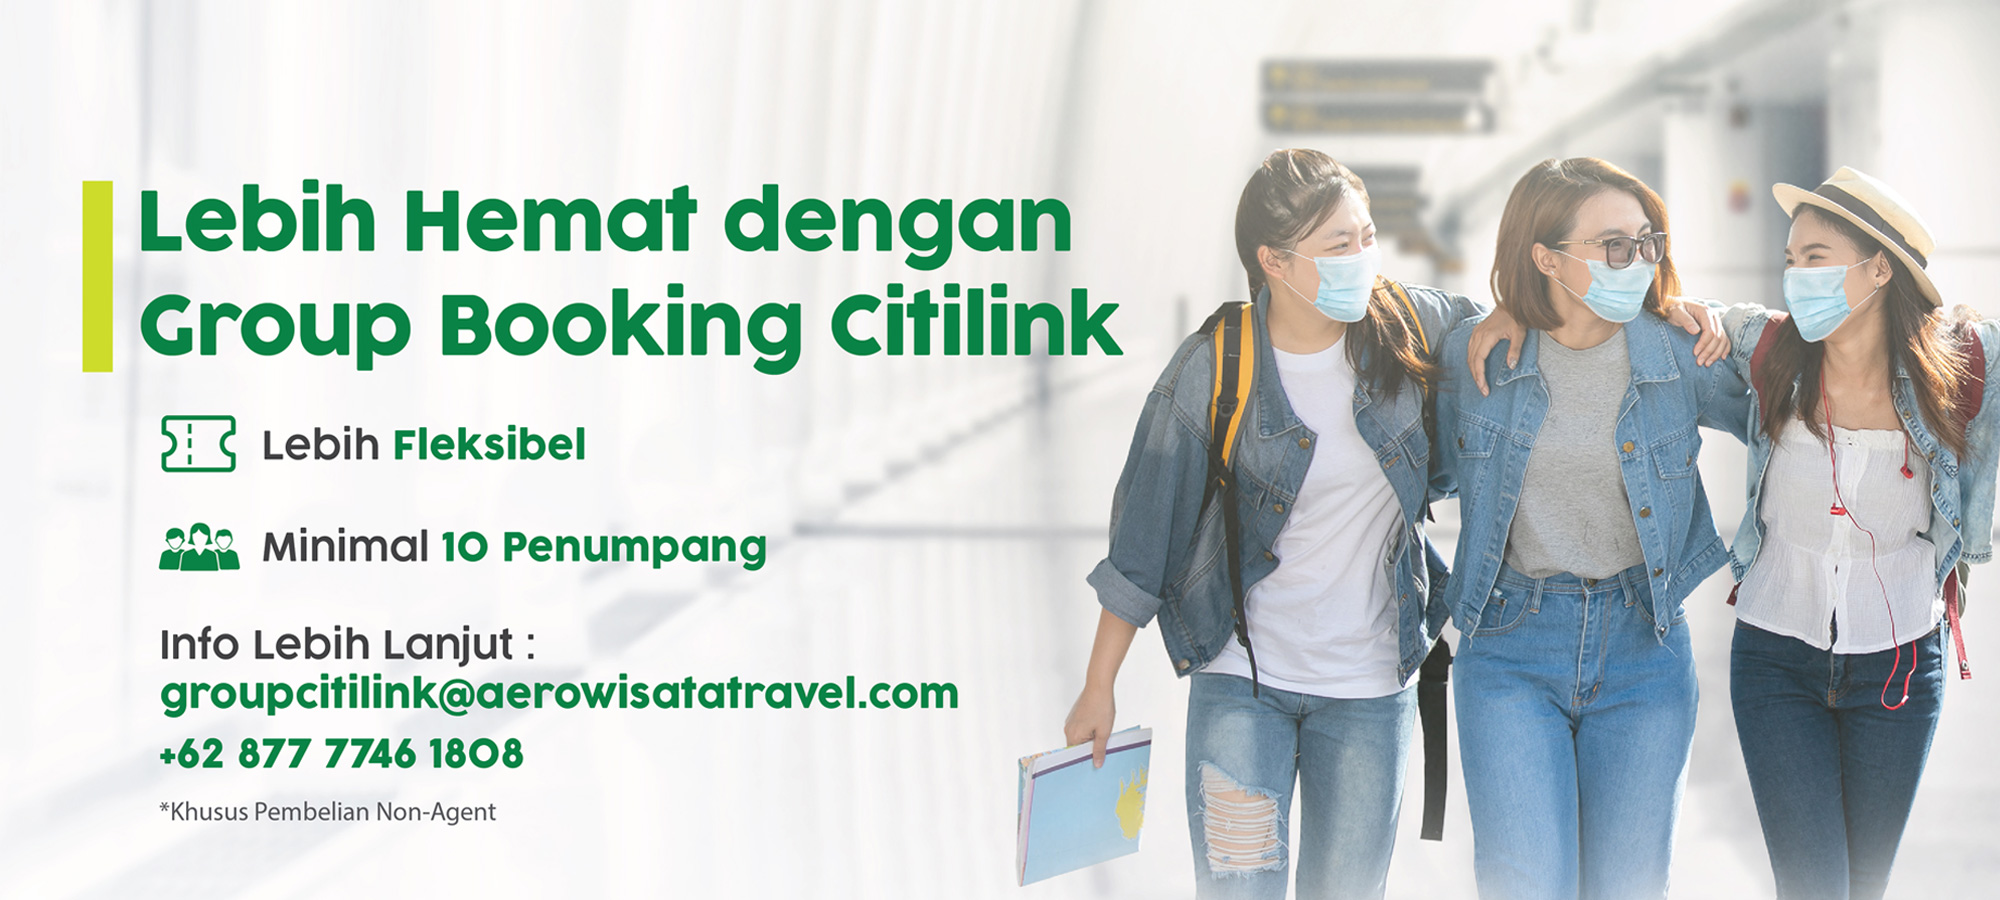 Group-booking-banner-ind1